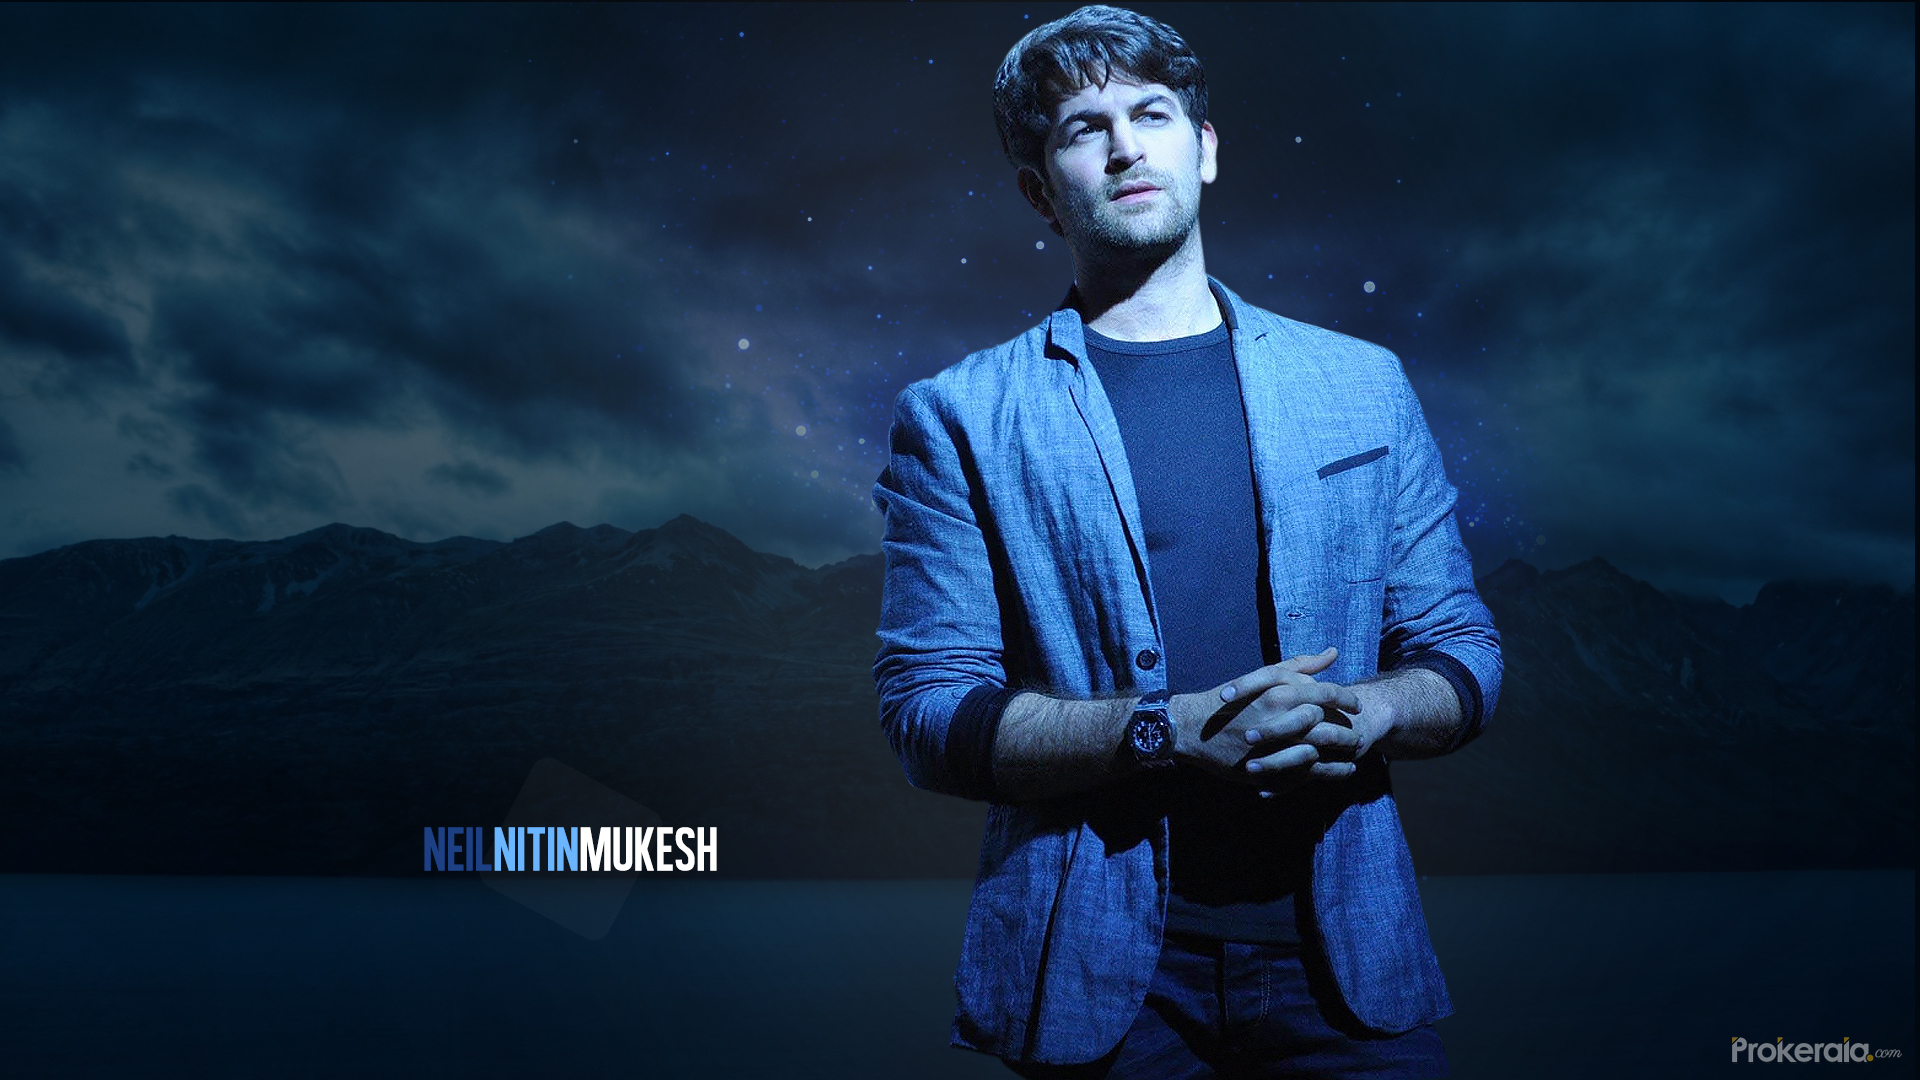 Neil Nitin Mukesh Hq Wallpaper For Download